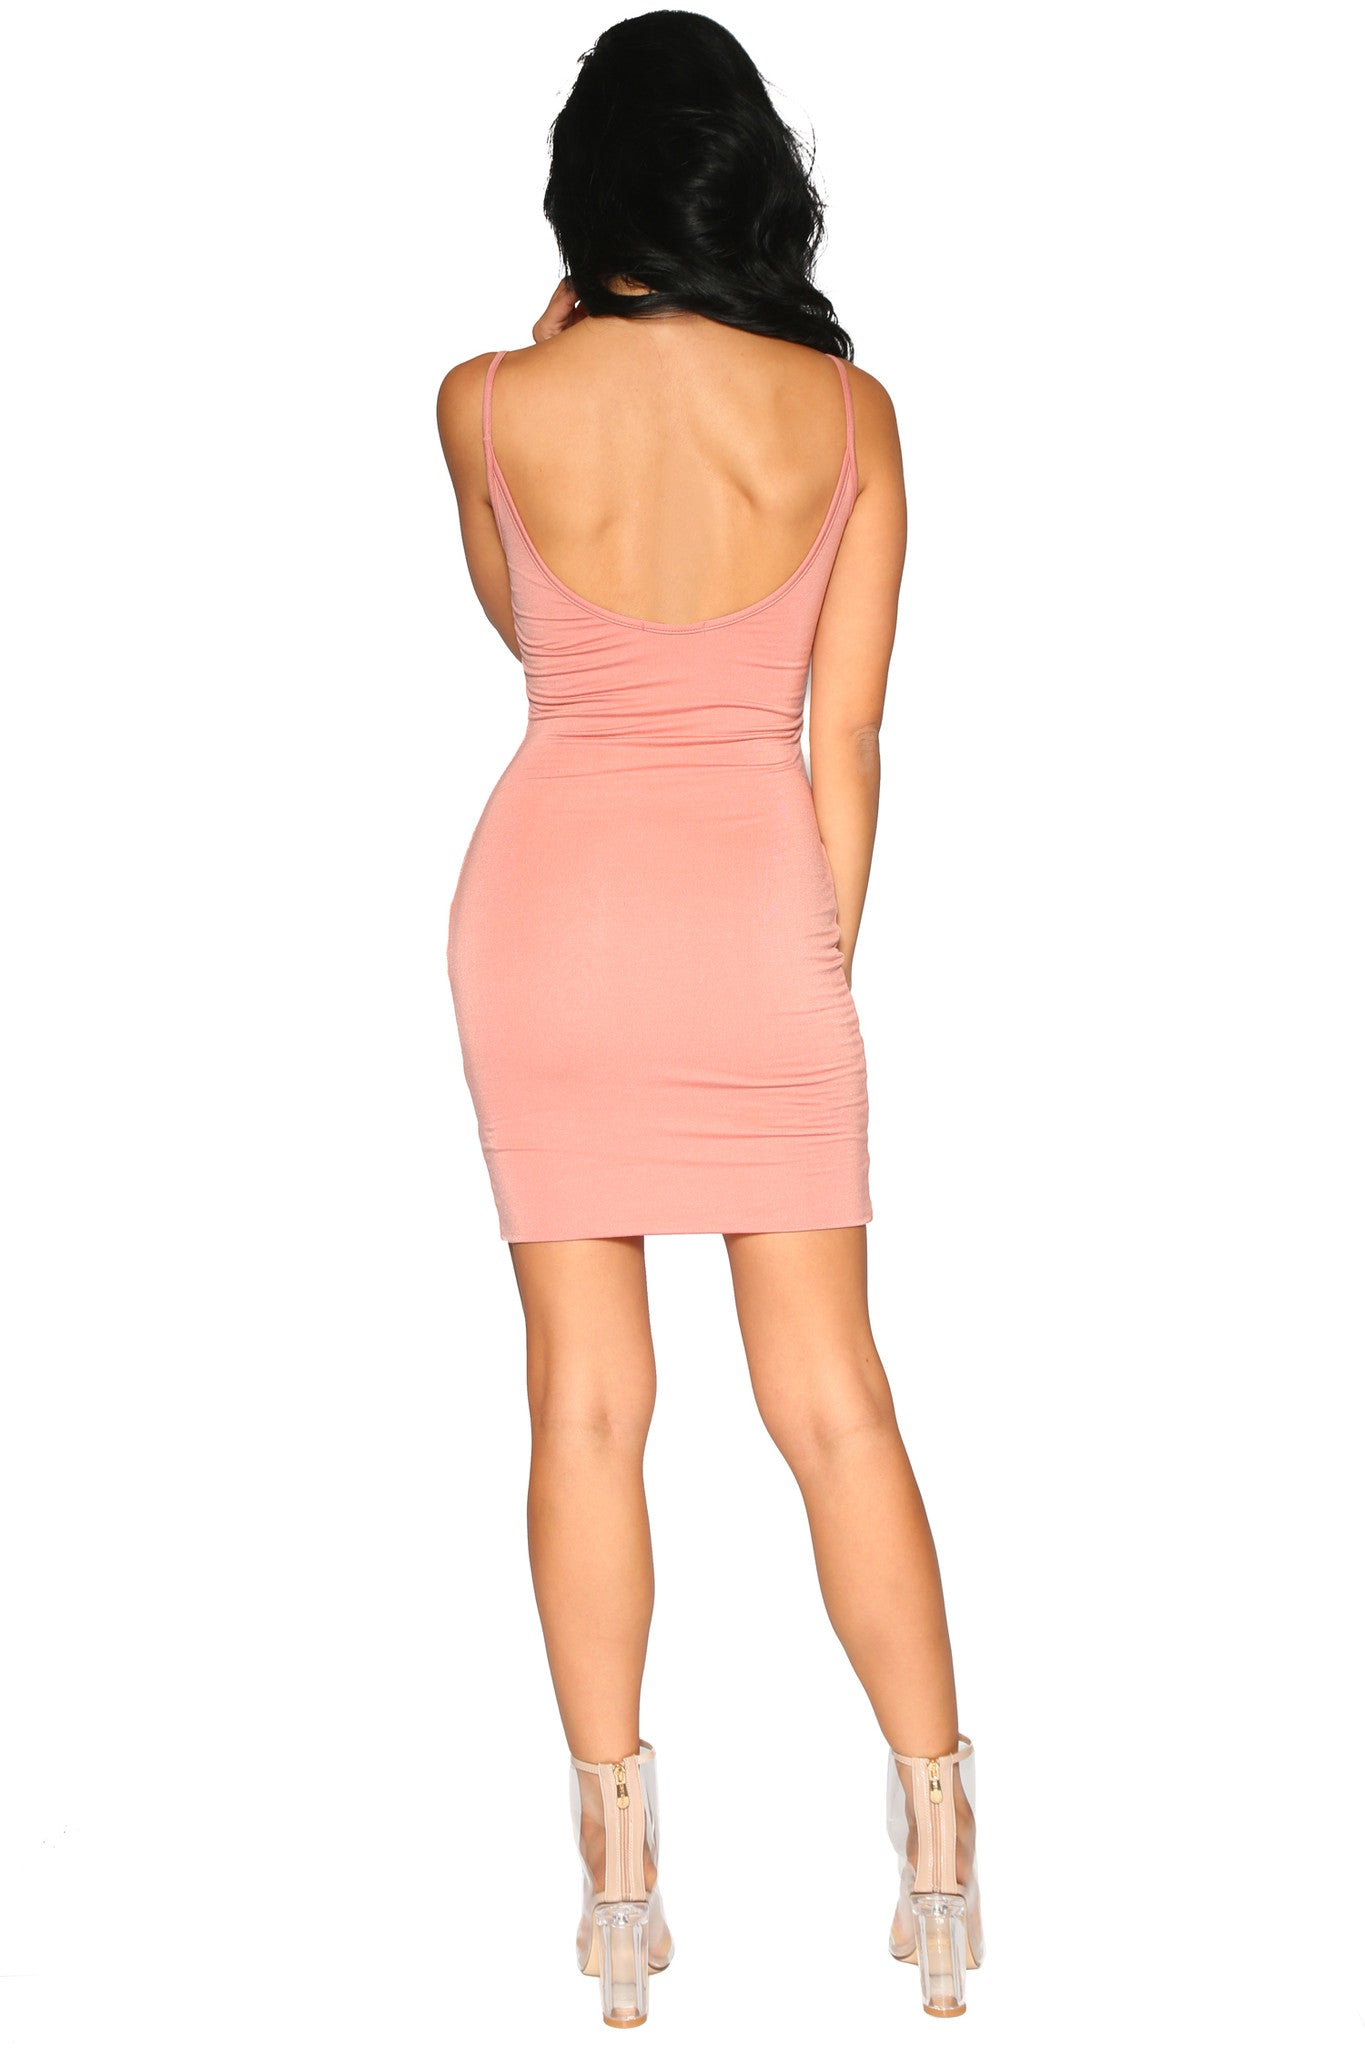 CHLOE TANK DRESS - Glam Envy - 3